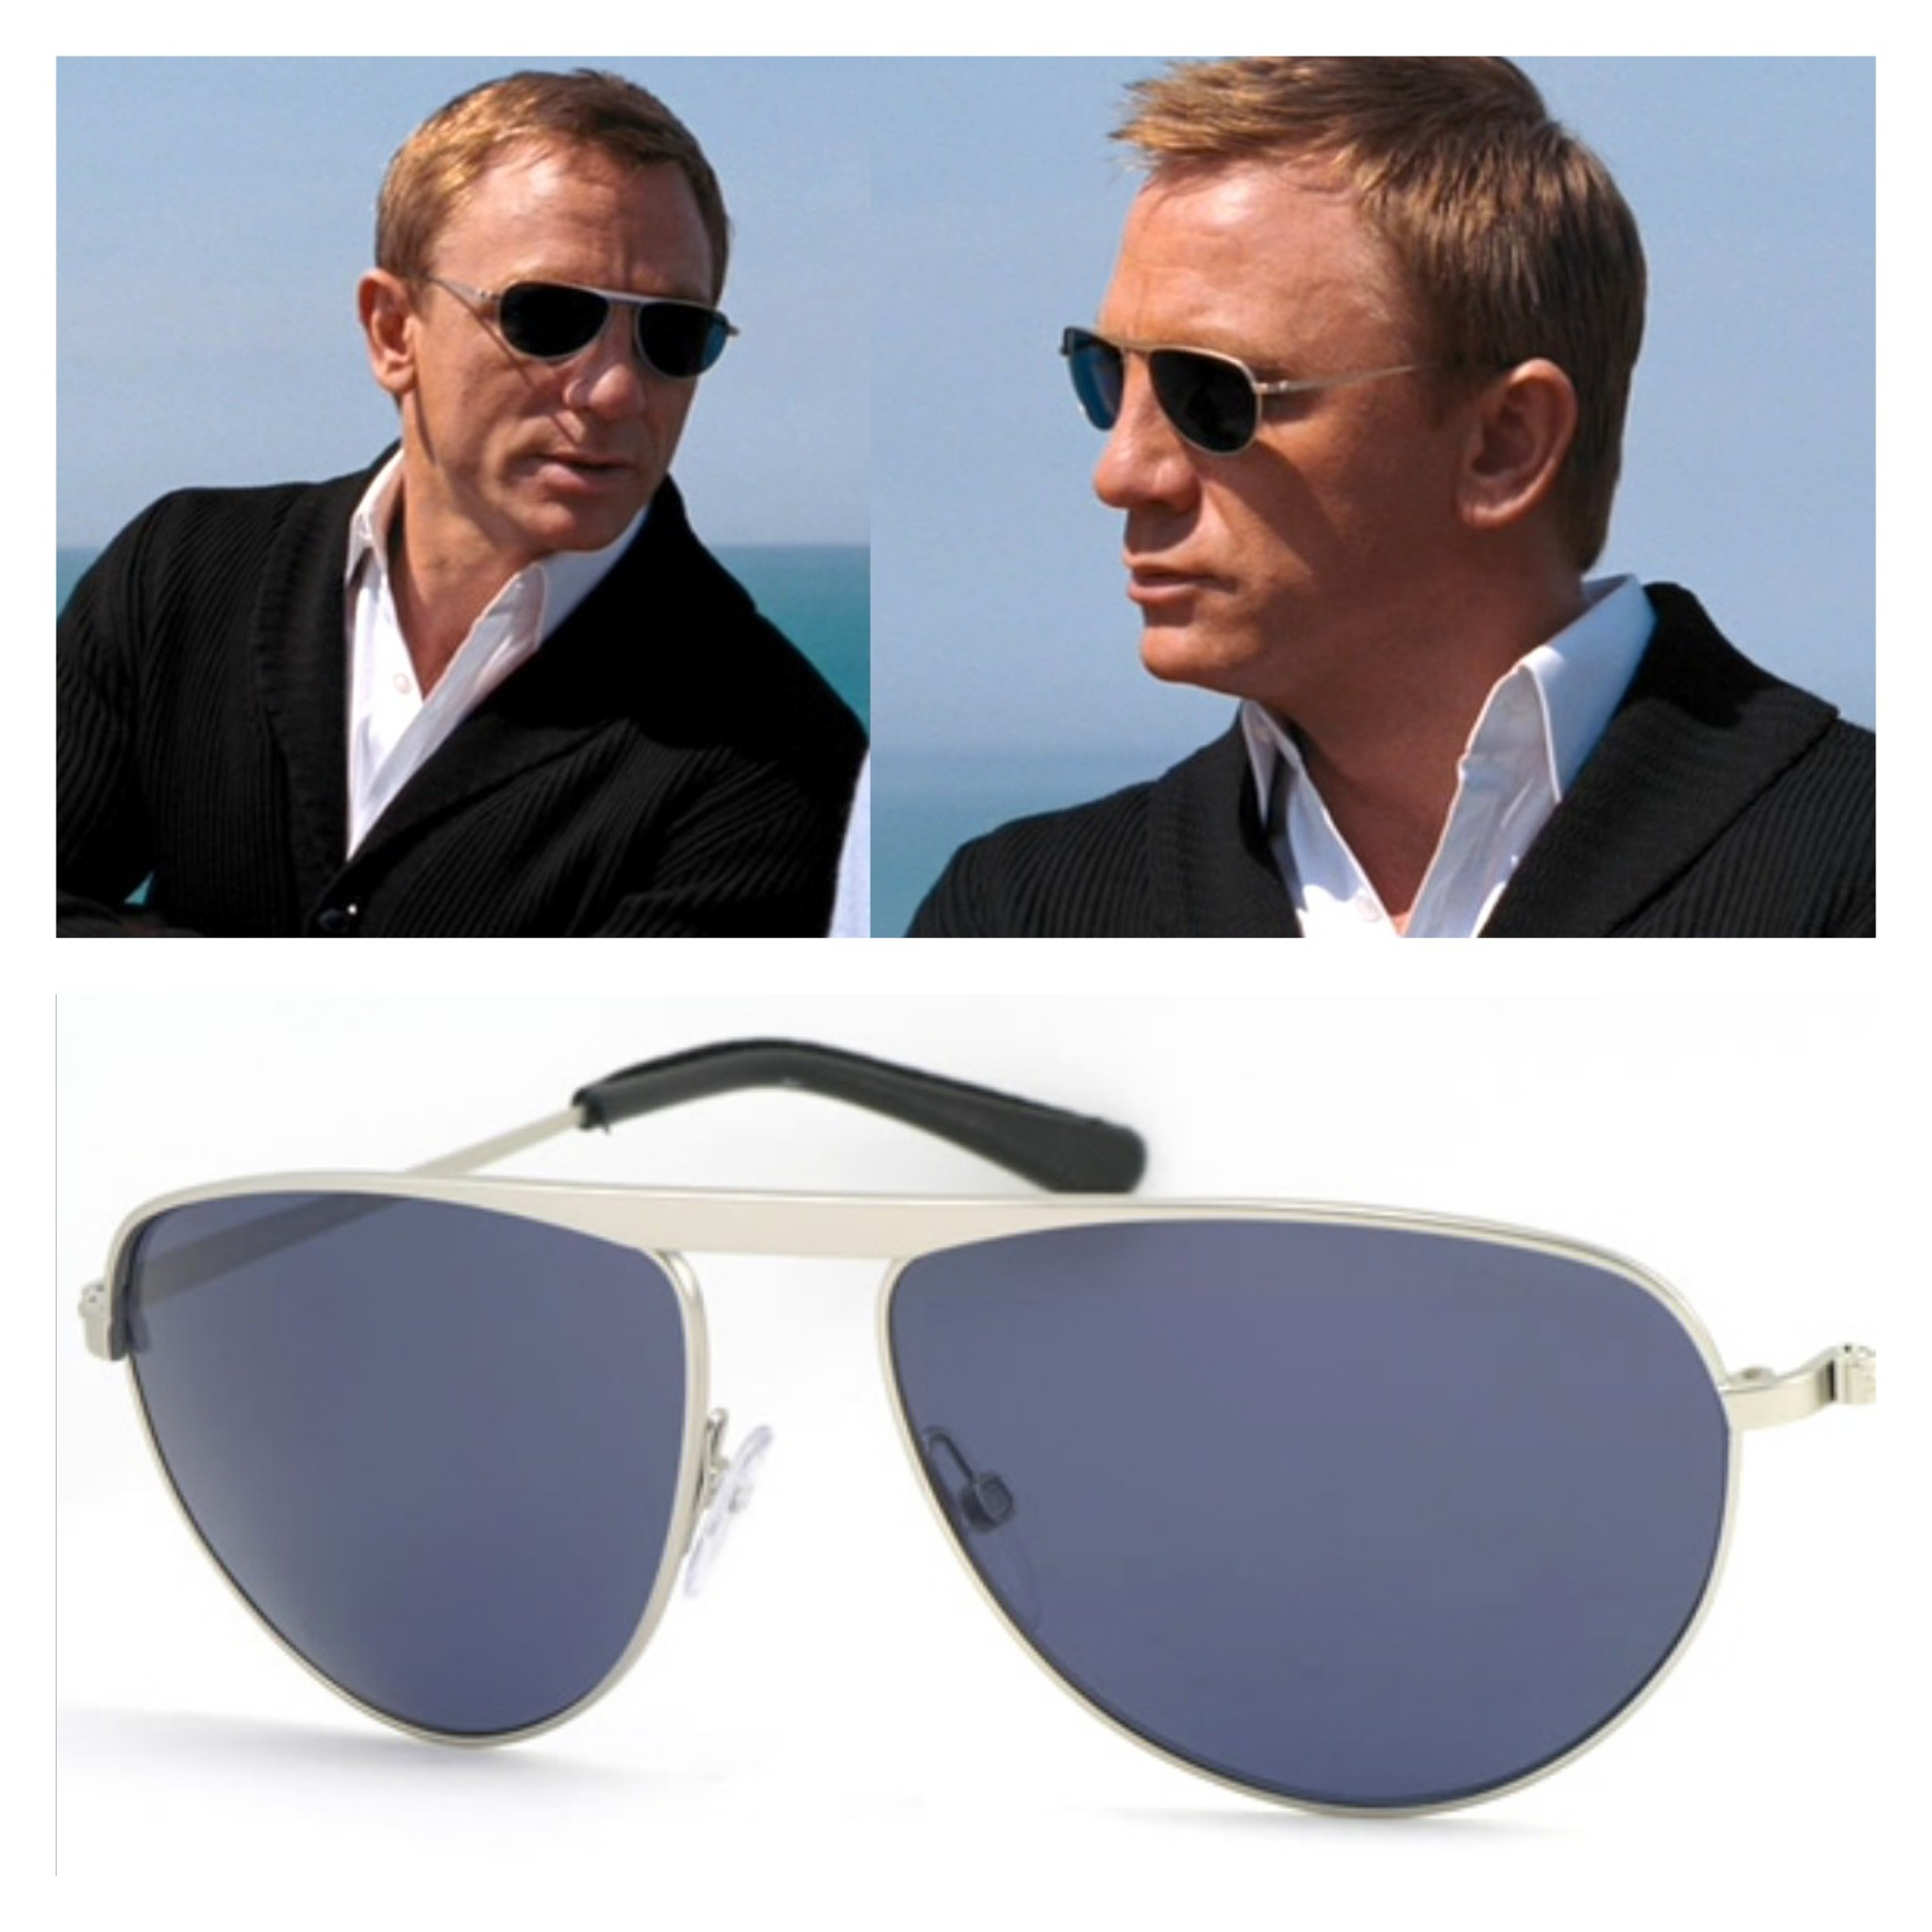 Gafas tom ford Hombre Magnífica Las Gafas De La Pelicula Spectre James Bond tom ford Of 38  Adorable Gafas tom ford Hombre